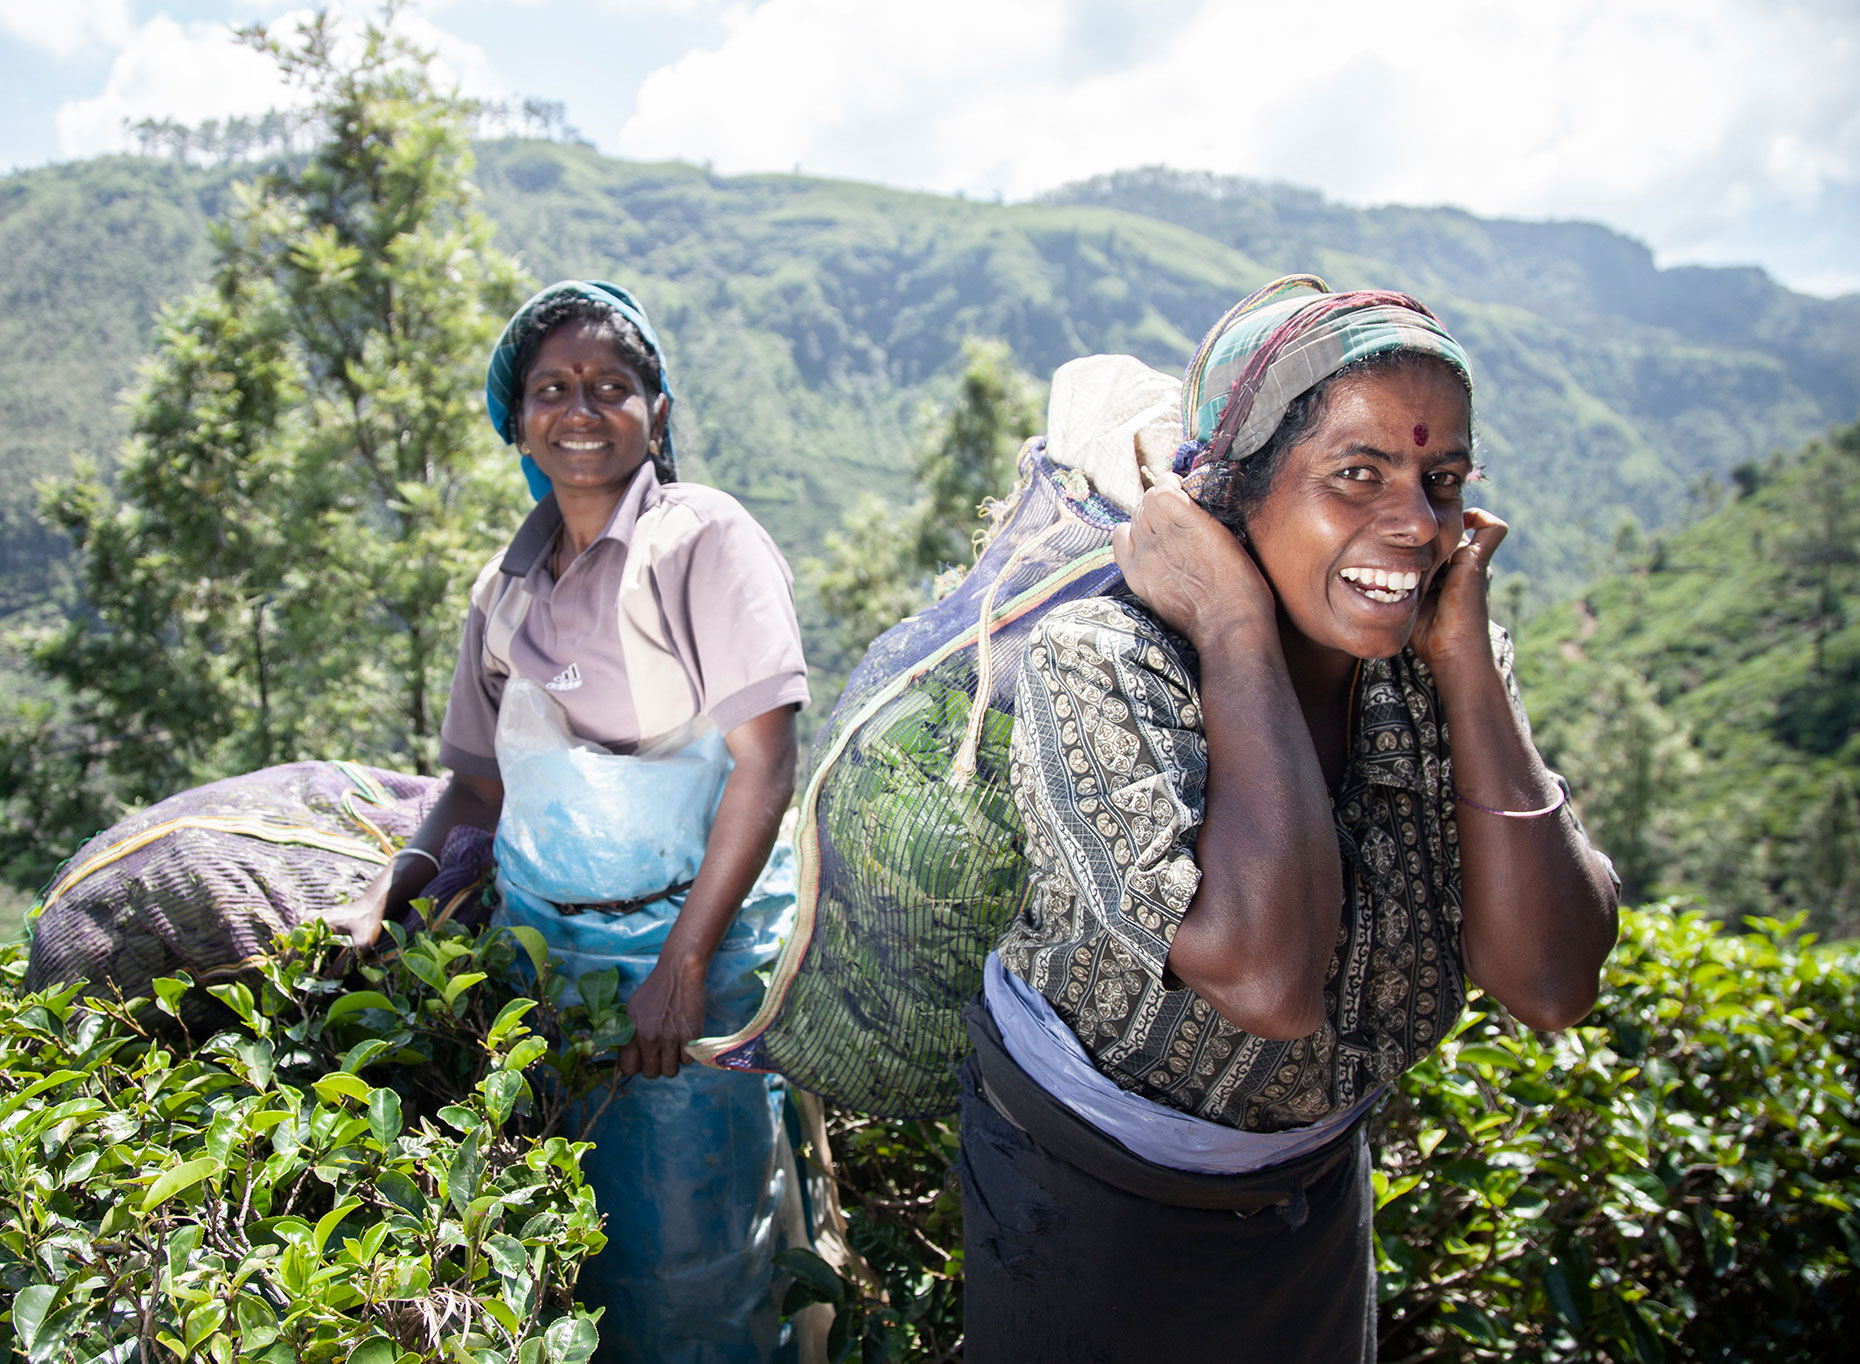 CB_WV_2-TEA-PICKERS_0395